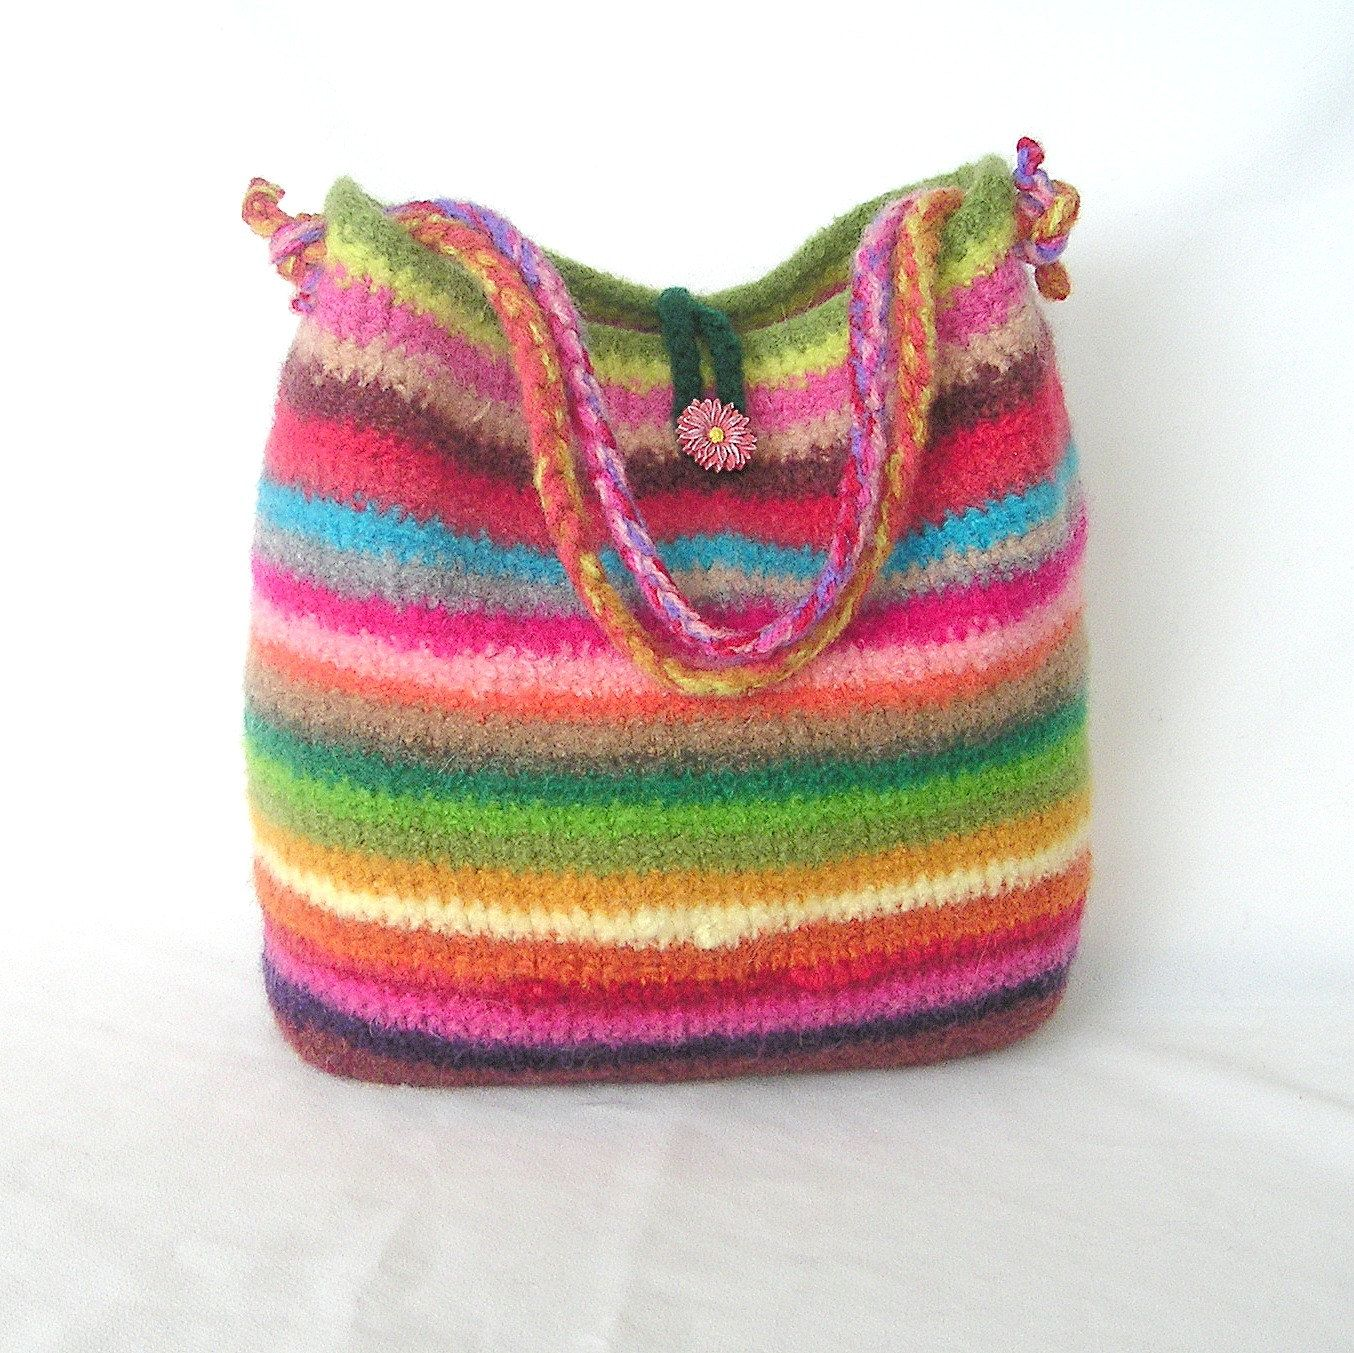 crochet purses | Over 100 Free Felted Knitted Bags, Purses and Totes ...